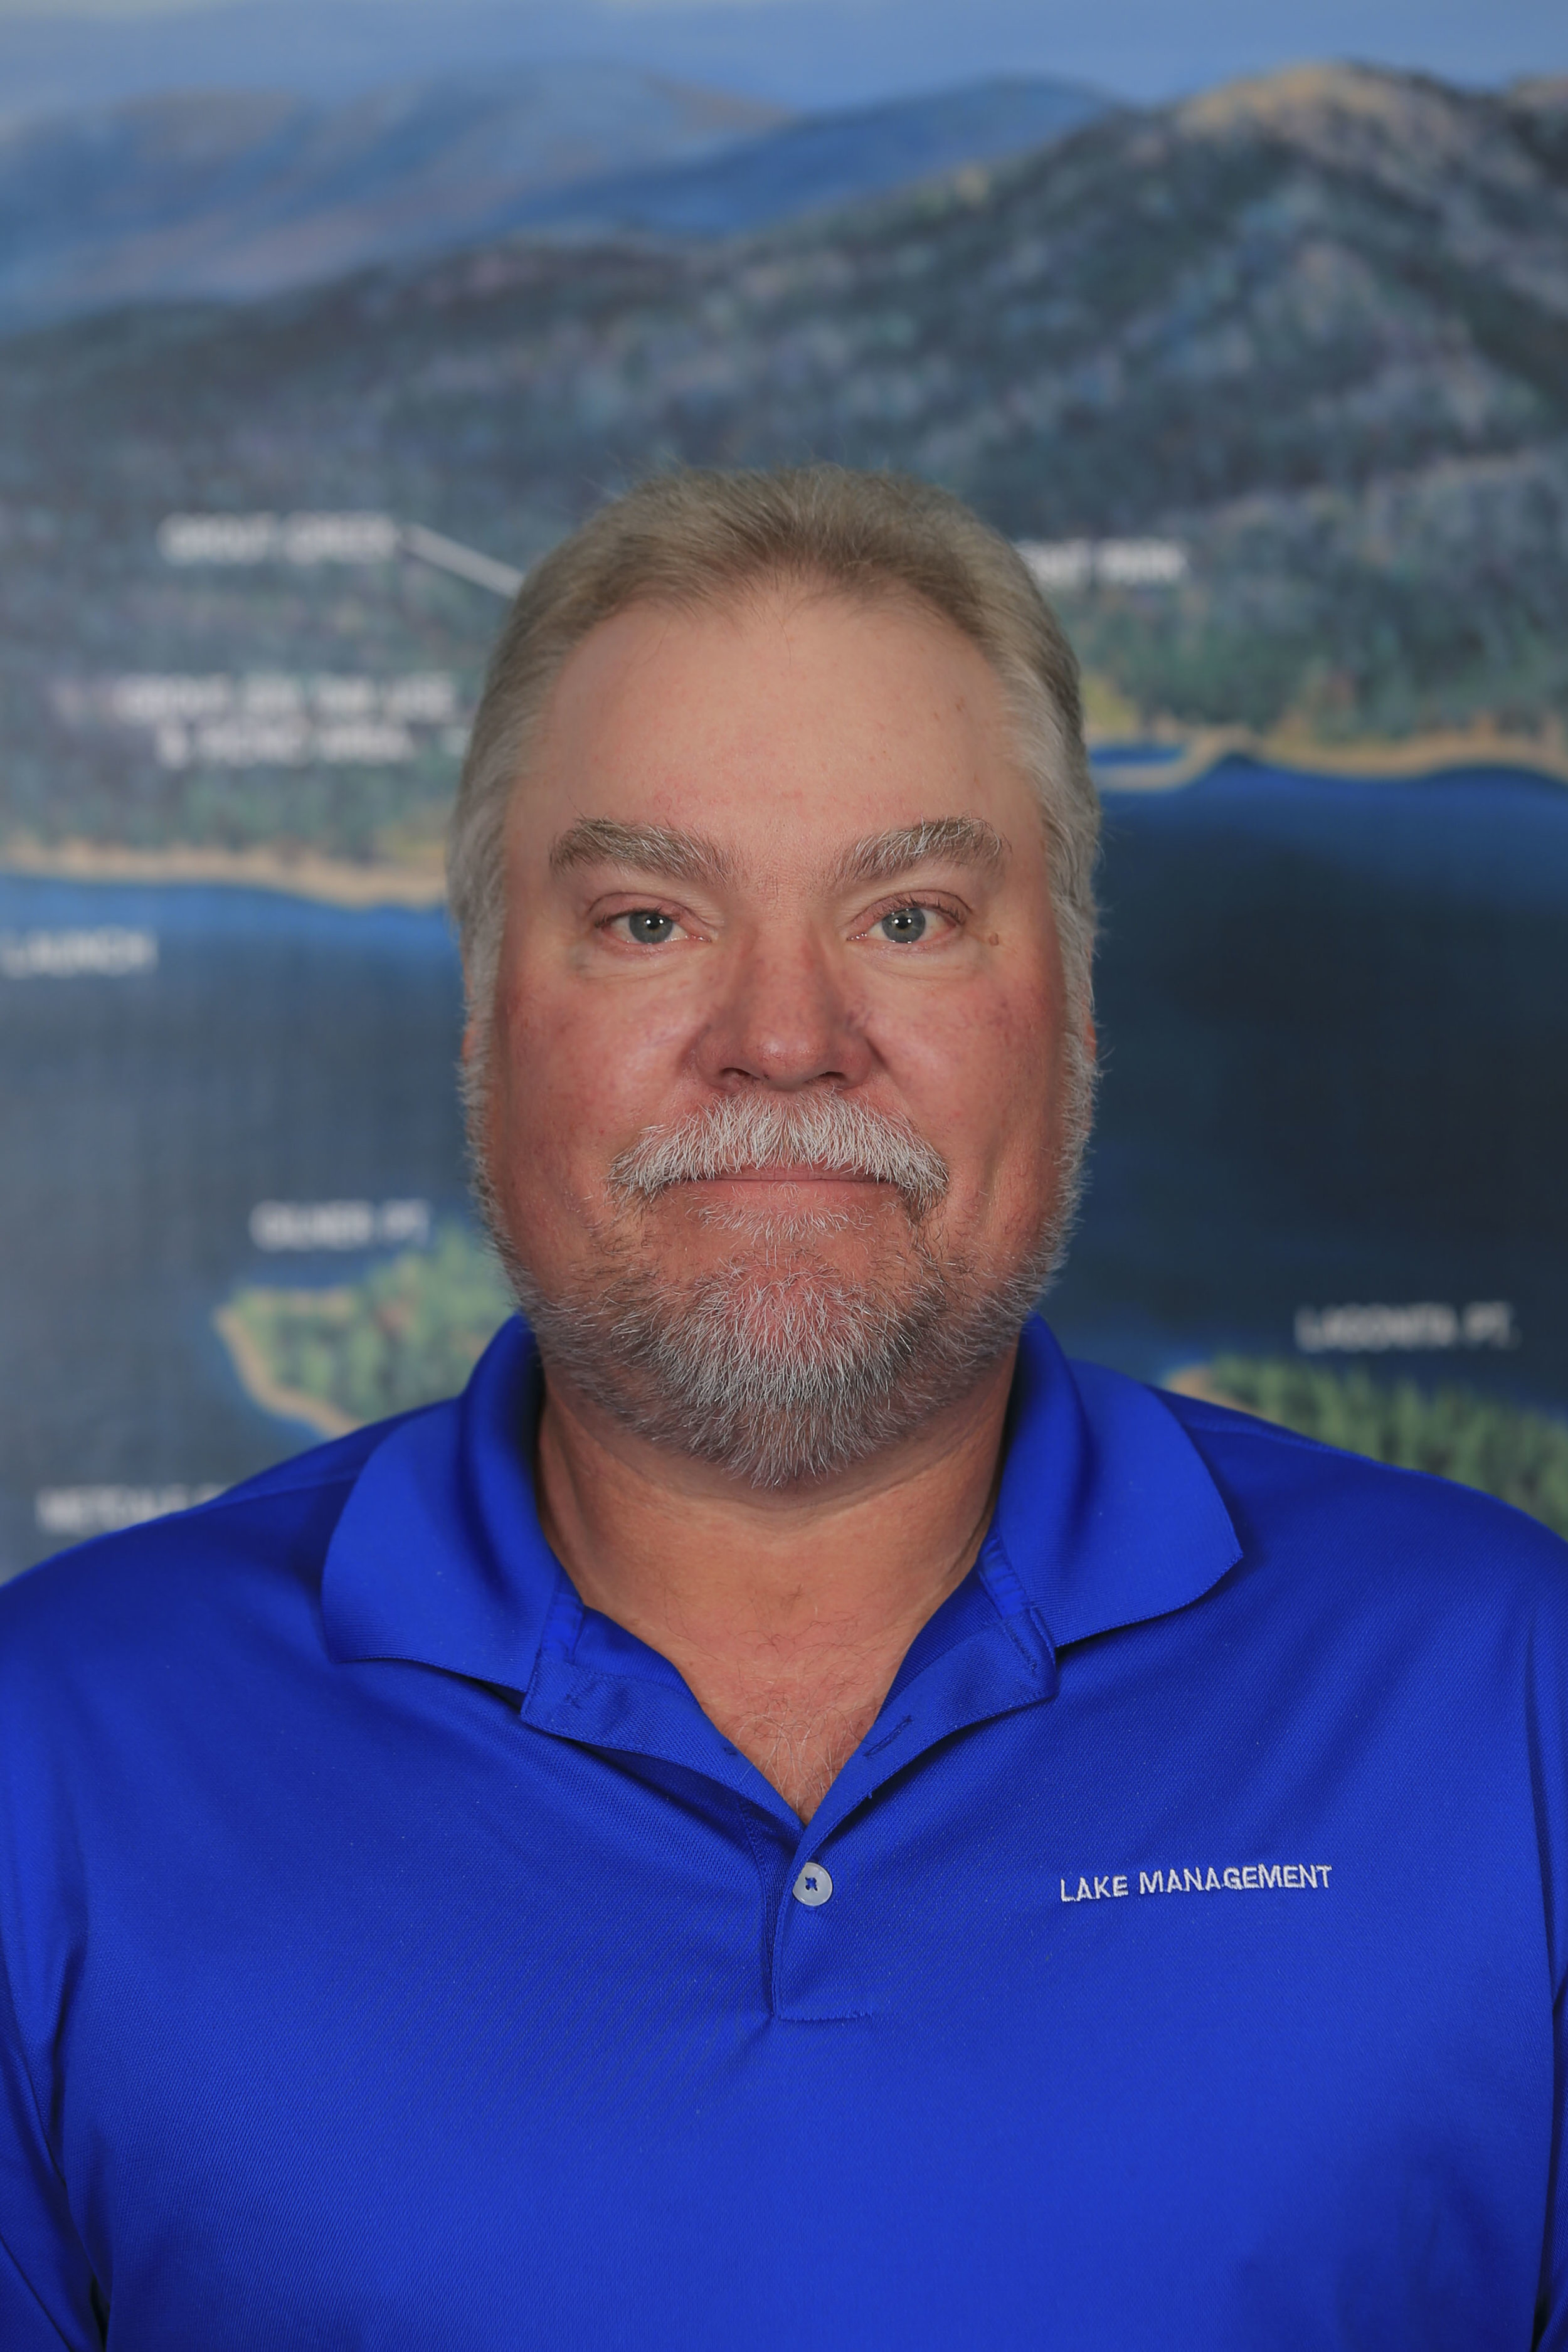 Mike Stephenson - General Manager